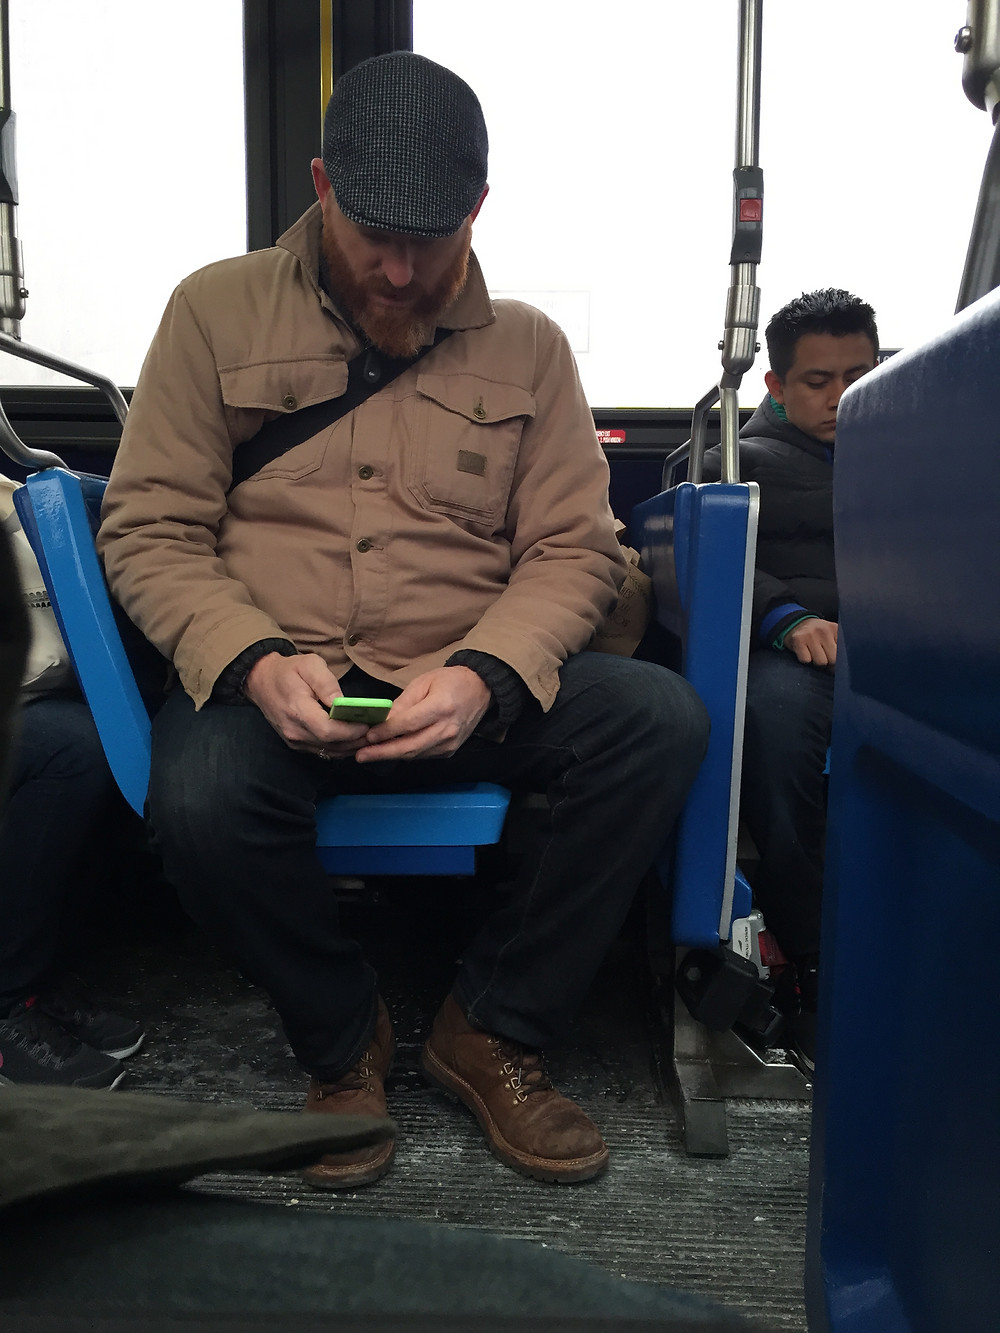 Manspread blocking the aisle on bus in new york, bagspread hogging seat behind #2